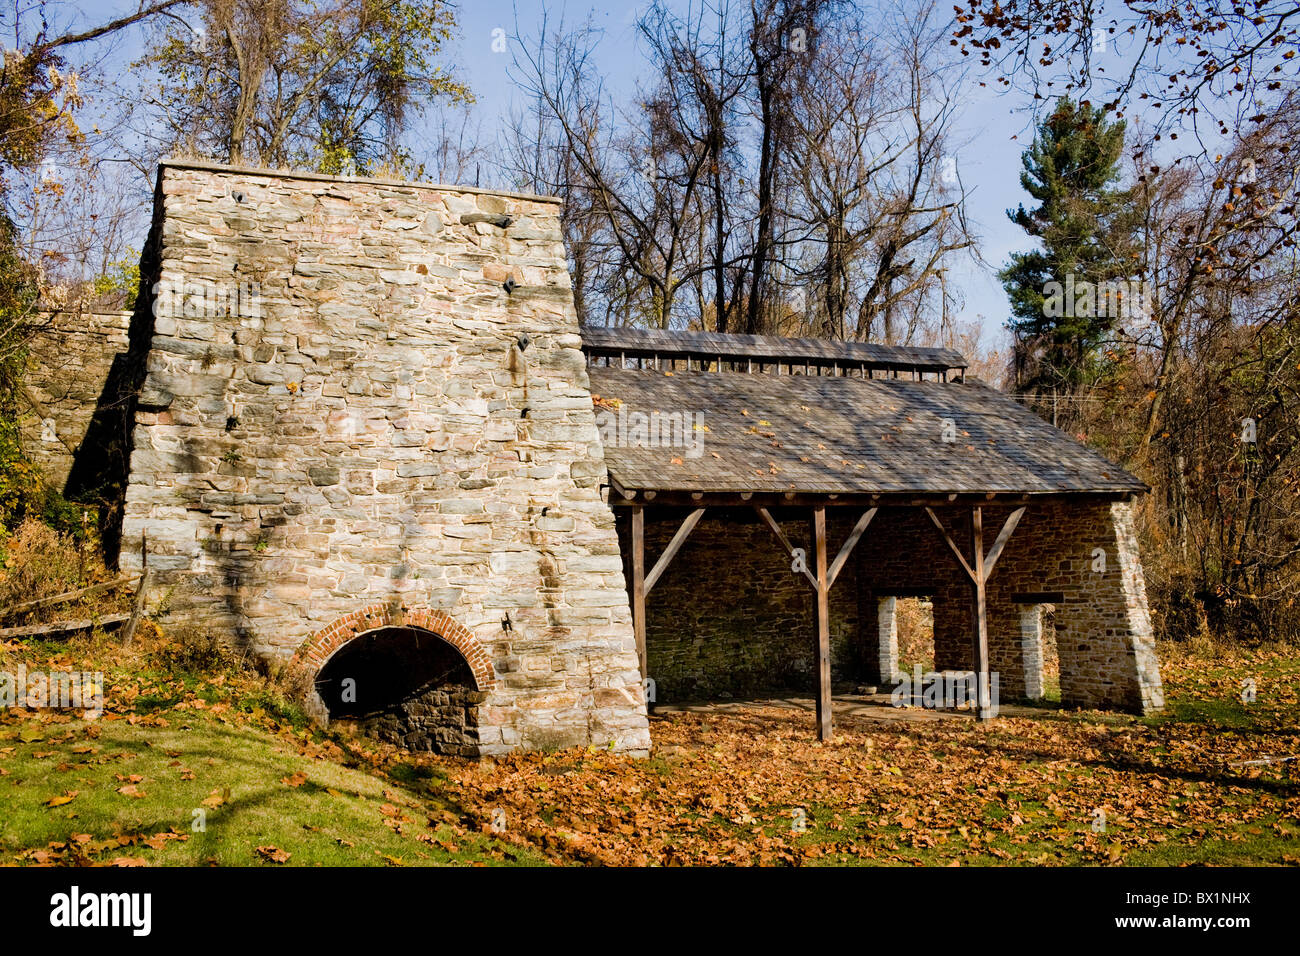 Catoctin Furnace, a colonial era iron furnace in Thurmont, Maryland - Stock Image